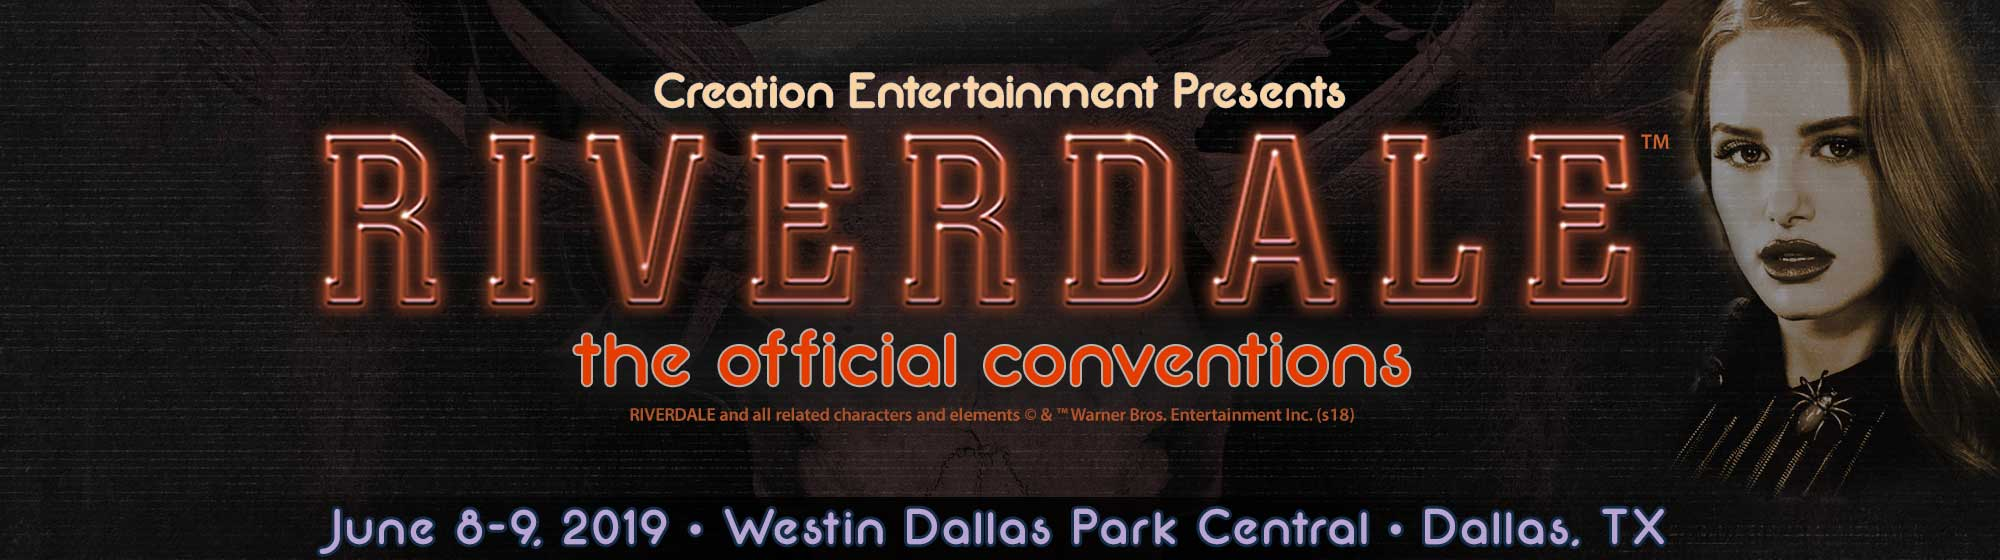 Riverdale Official Convention June 1-2, 2019